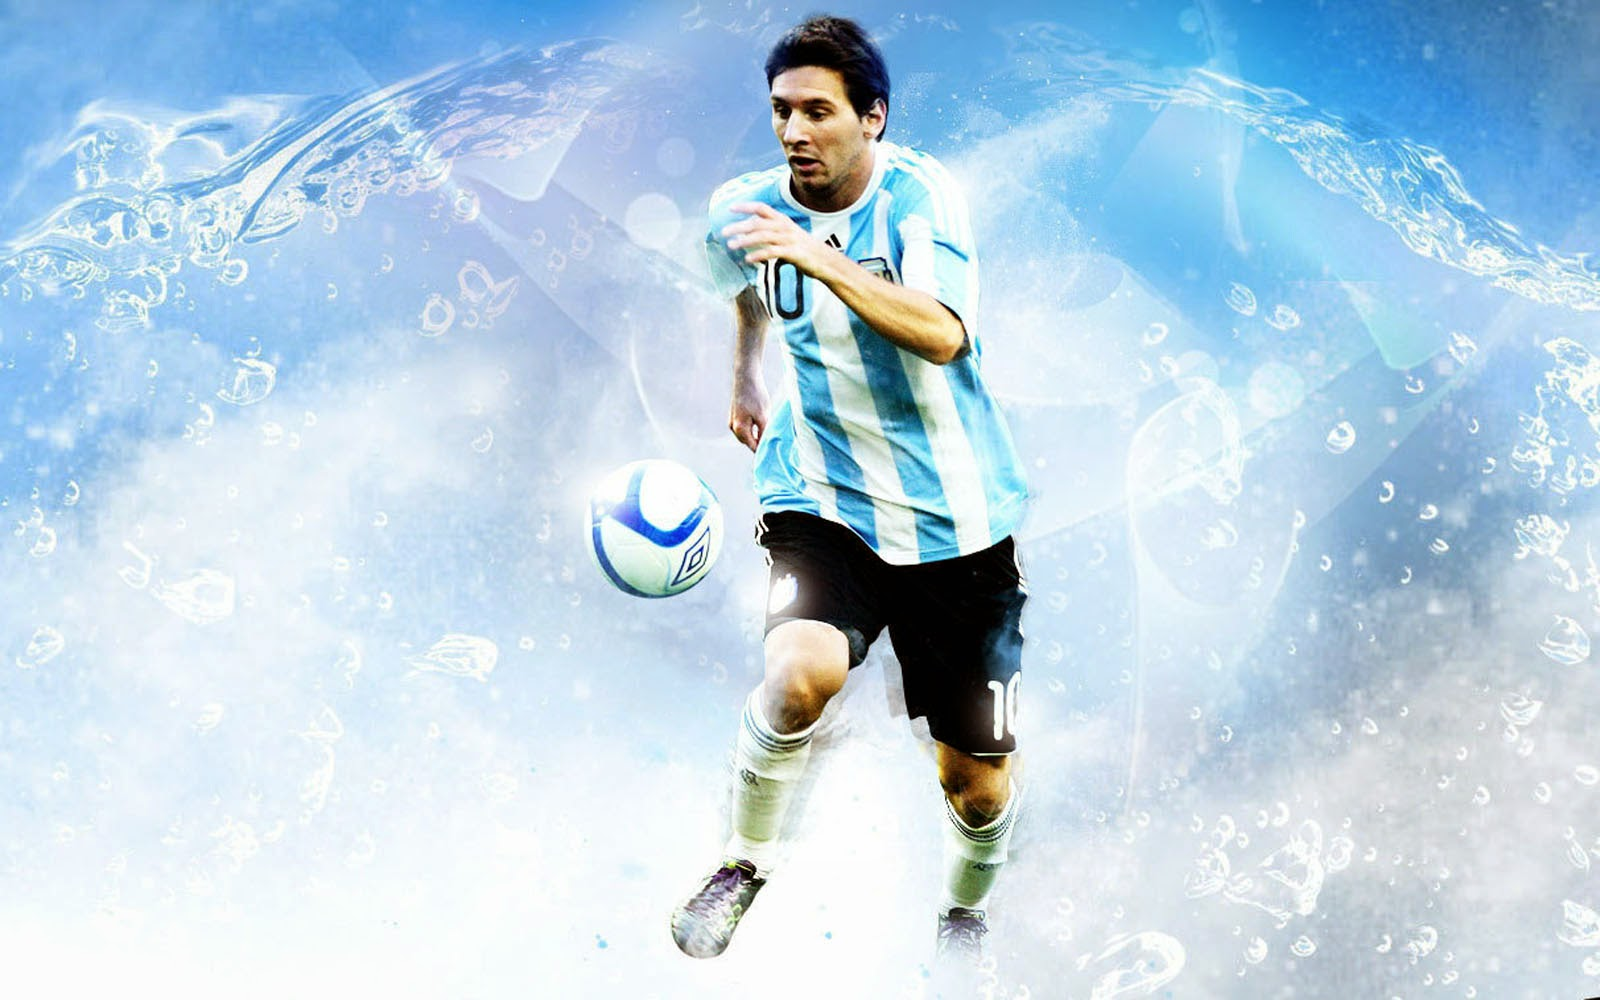 Messi Wallpaper: Wallpapers: Lionel Messi Wallpapers